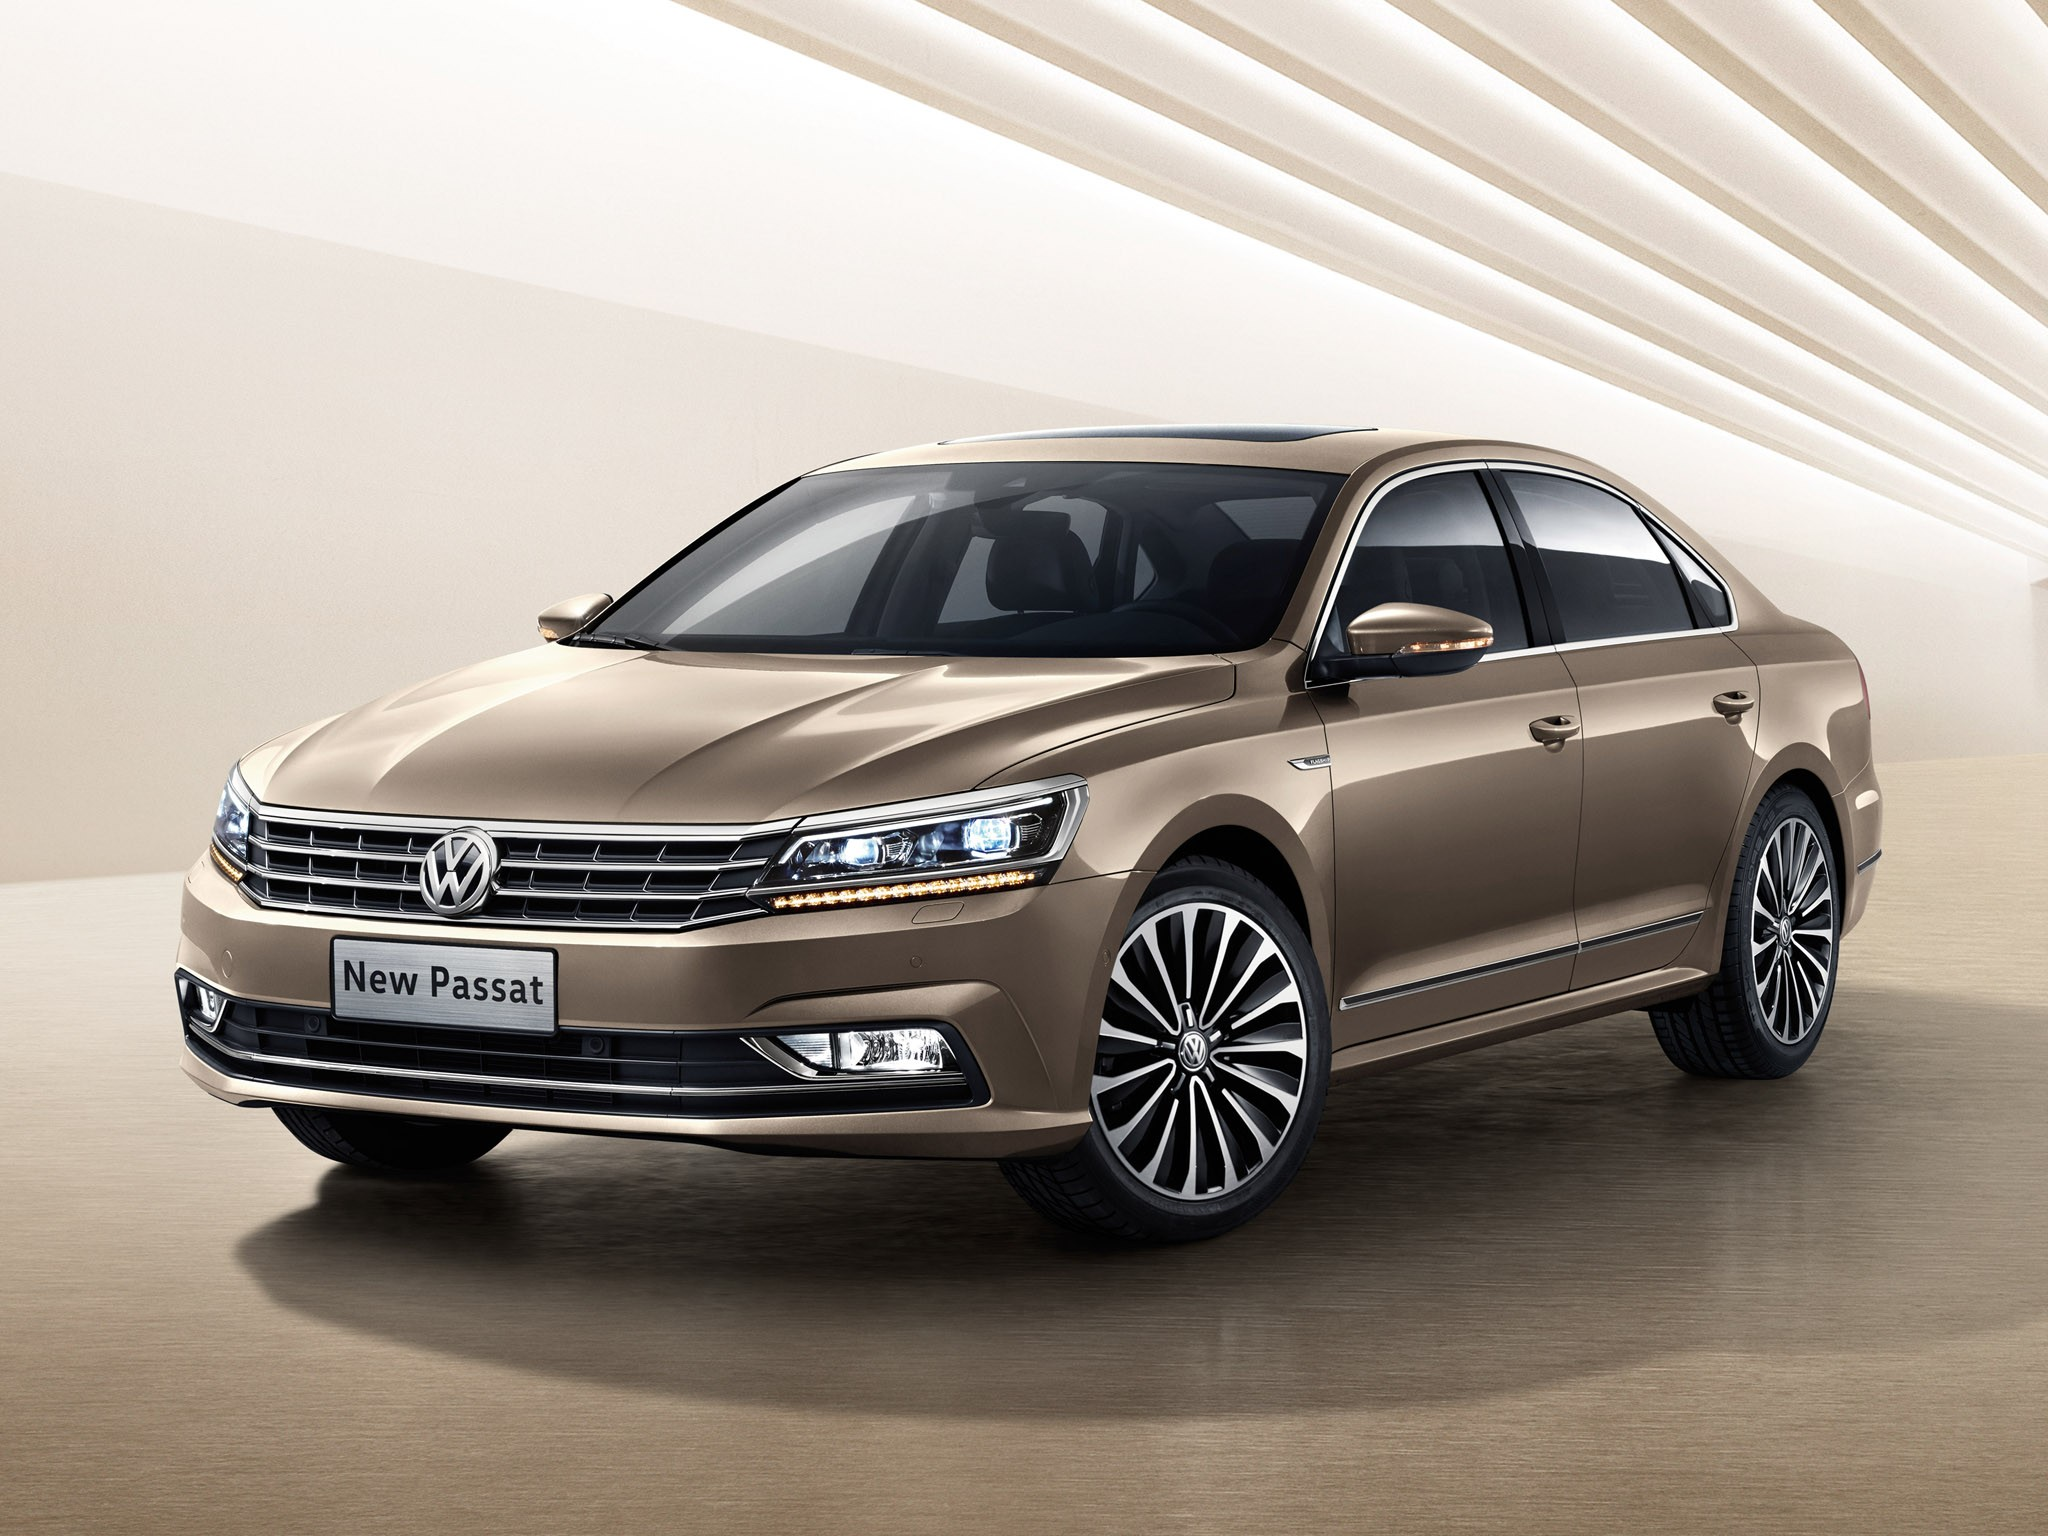 2016 Volkswagen Passat China